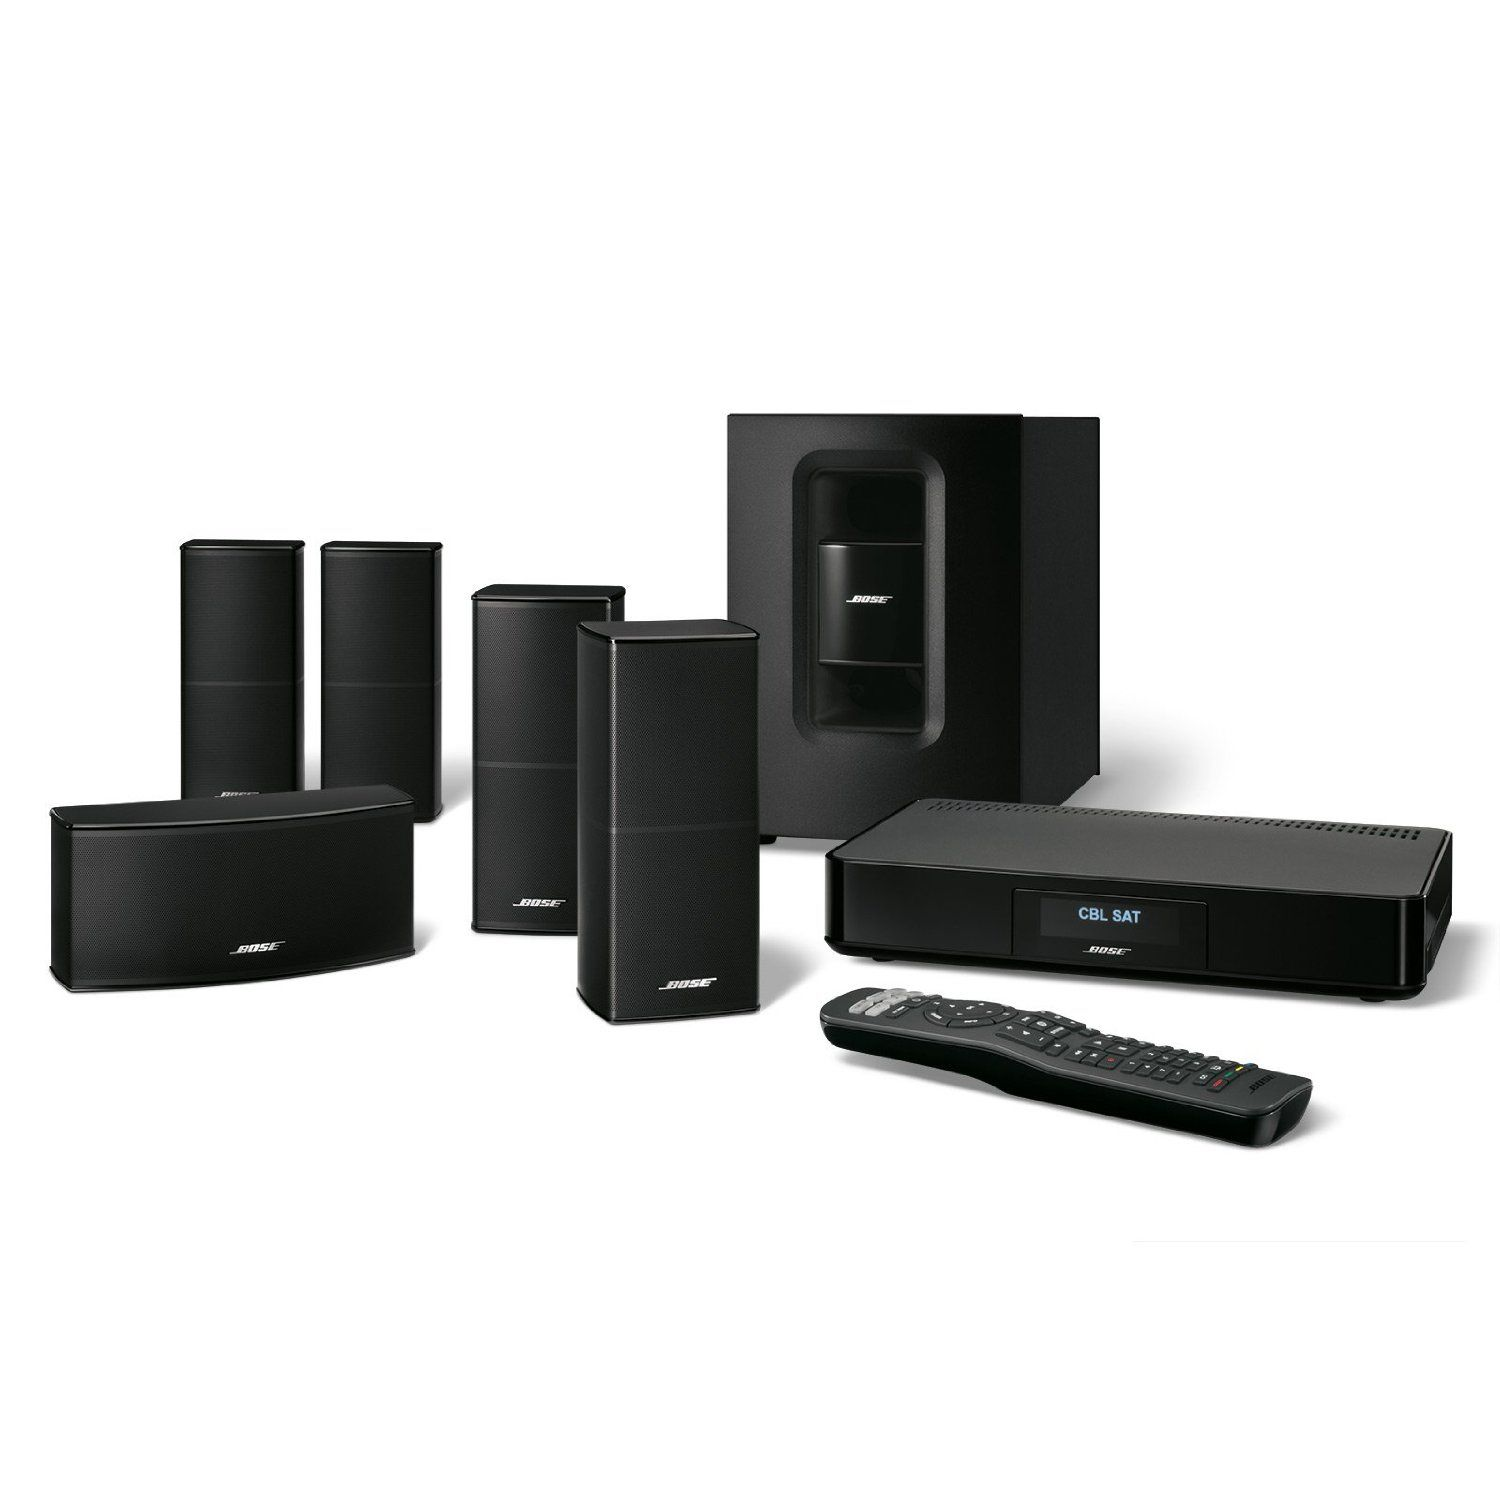 Bose CineMate 520 Home Theater System - Reviews